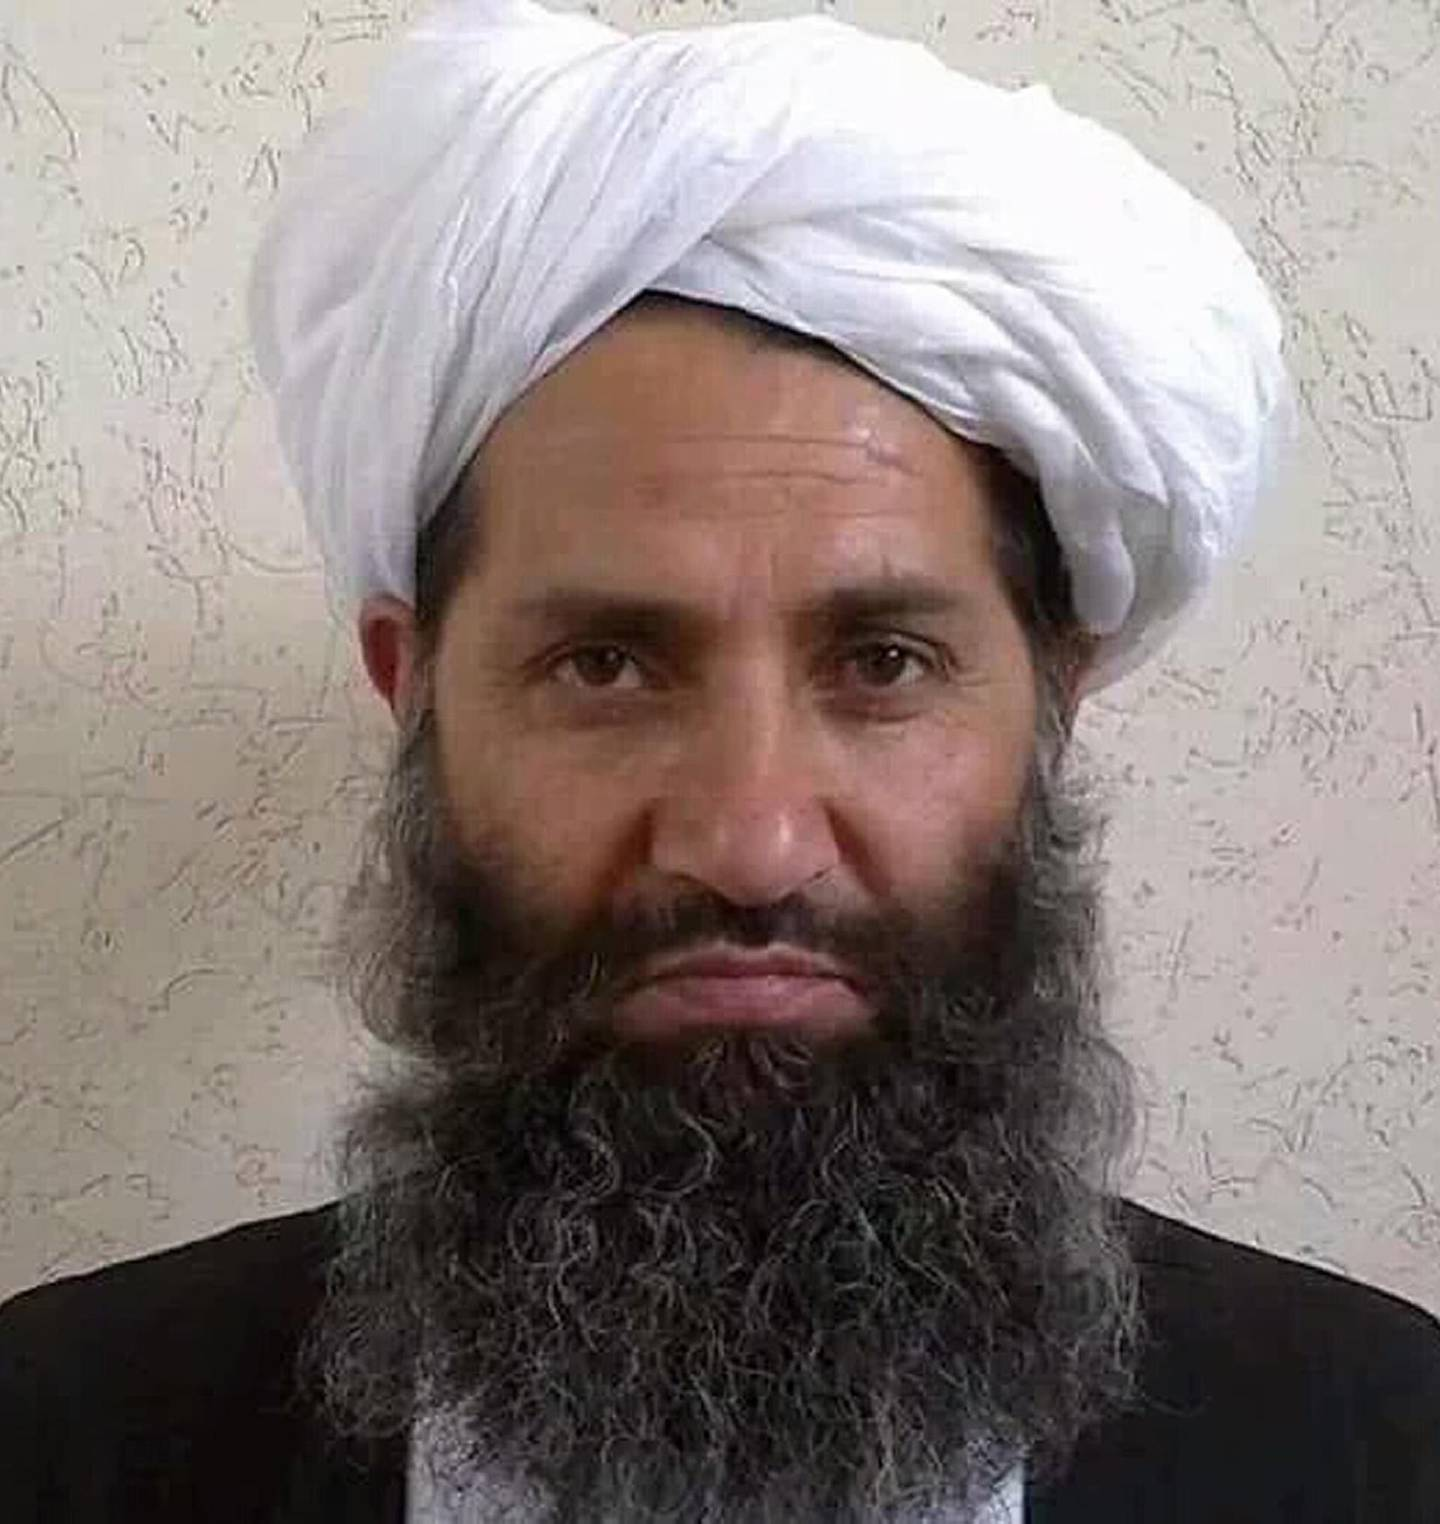 """This undated handout photograph released by the Afghan Taliban on May 25, 2016 shows, according to the Afghan Taliban, the new Mullah Haibatullah Akhundzada posing for a photograph at an undisclosed location. - The Afghan Taliban on May 25 announced Haibatullah Akhundzada as their new chief, elevating a low-profile religious figure in a swift power transition after officially confirming the death of Mullah Mansour in a US drone strike. (Photo by STR / Afghan Taliban / AFP) / -----EDITORS NOTE --- RESTRICTED TO EDITORIAL USE - MANDATORY CREDIT """"AFP PHOTO / AFGHAN TALIBAN"""" - NO MARKETING - NO ADVERTISING CAMPAIGNS - DISTRIBUTED AS A SERVICE TO CLIENTS"""